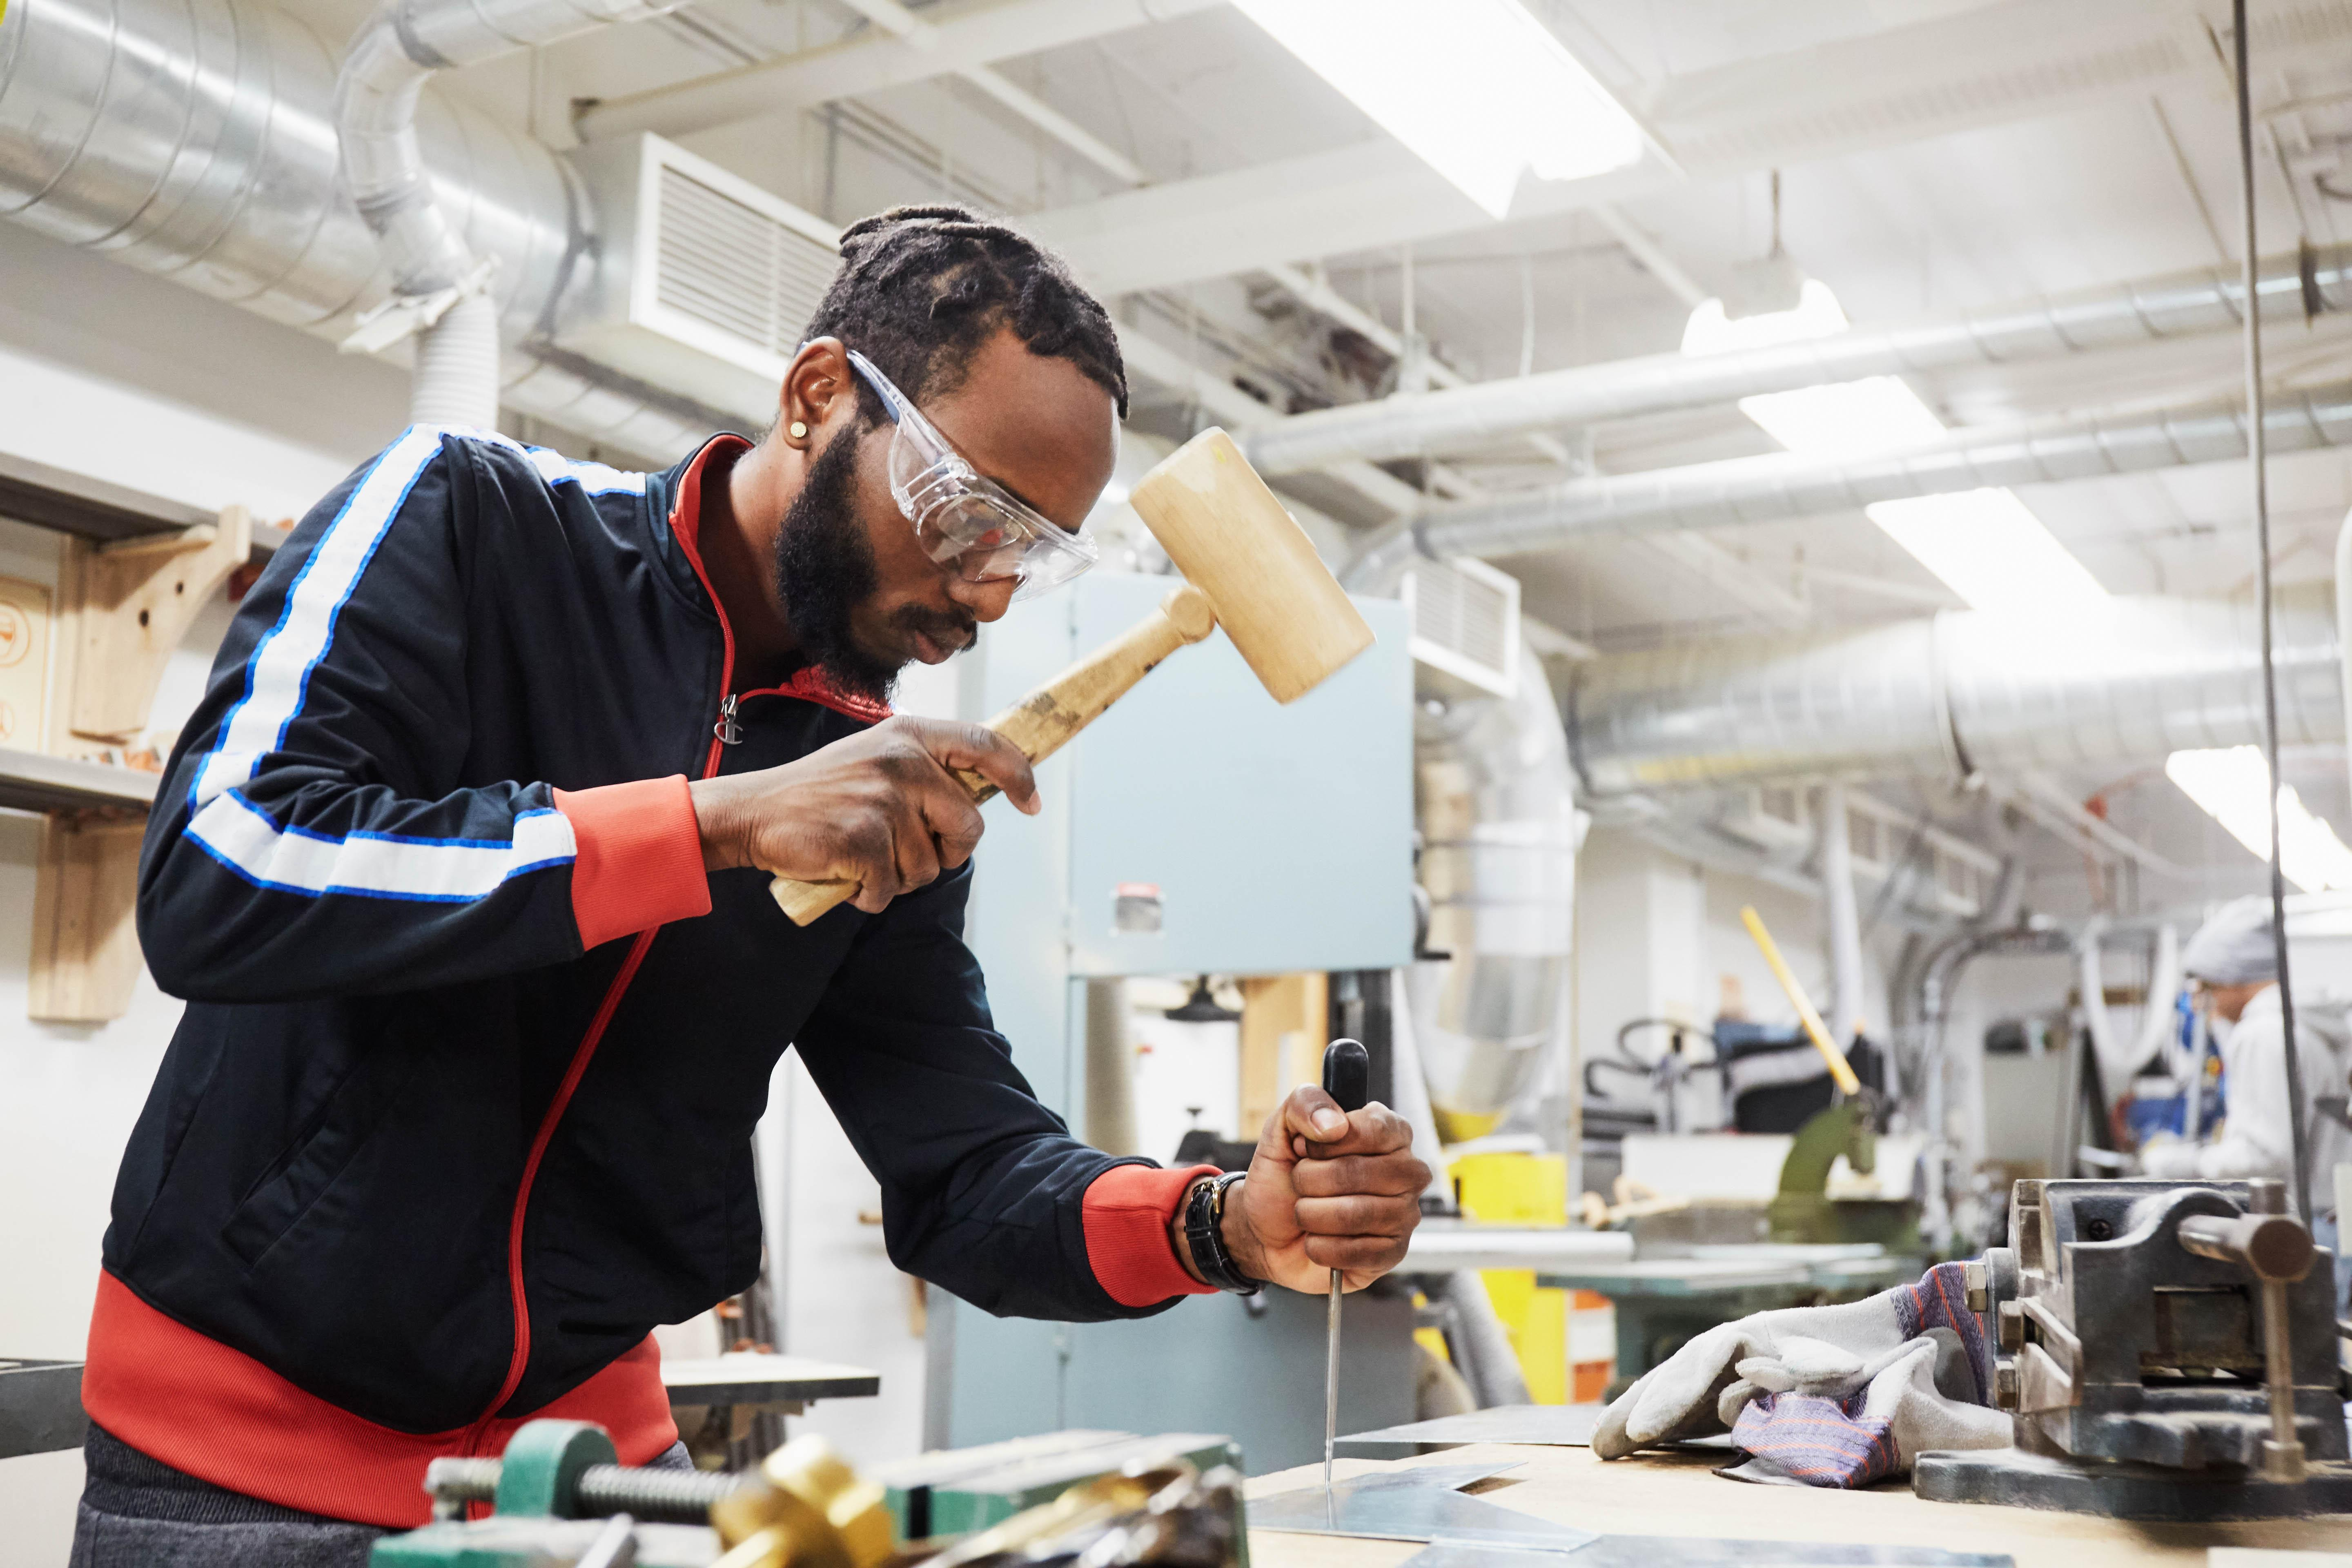 a student wearing safety goggles uses a mallet on a board in the Centre for Skilled Trades and Technology